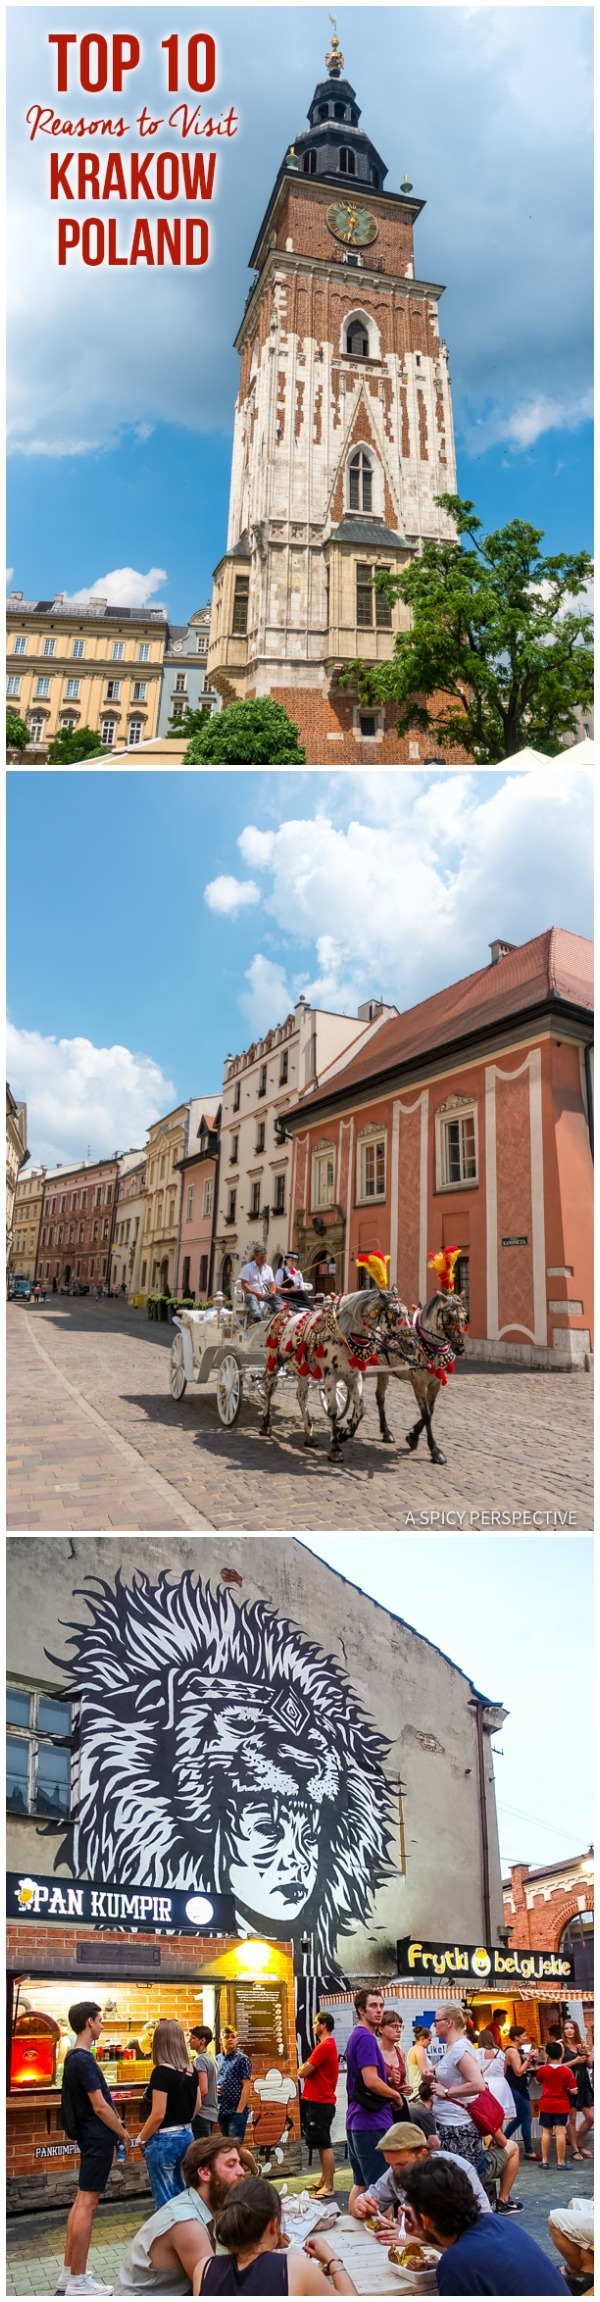 Best 10 Reasons to Visit Krakow, Poland | ASpicyPerspective.com #travel